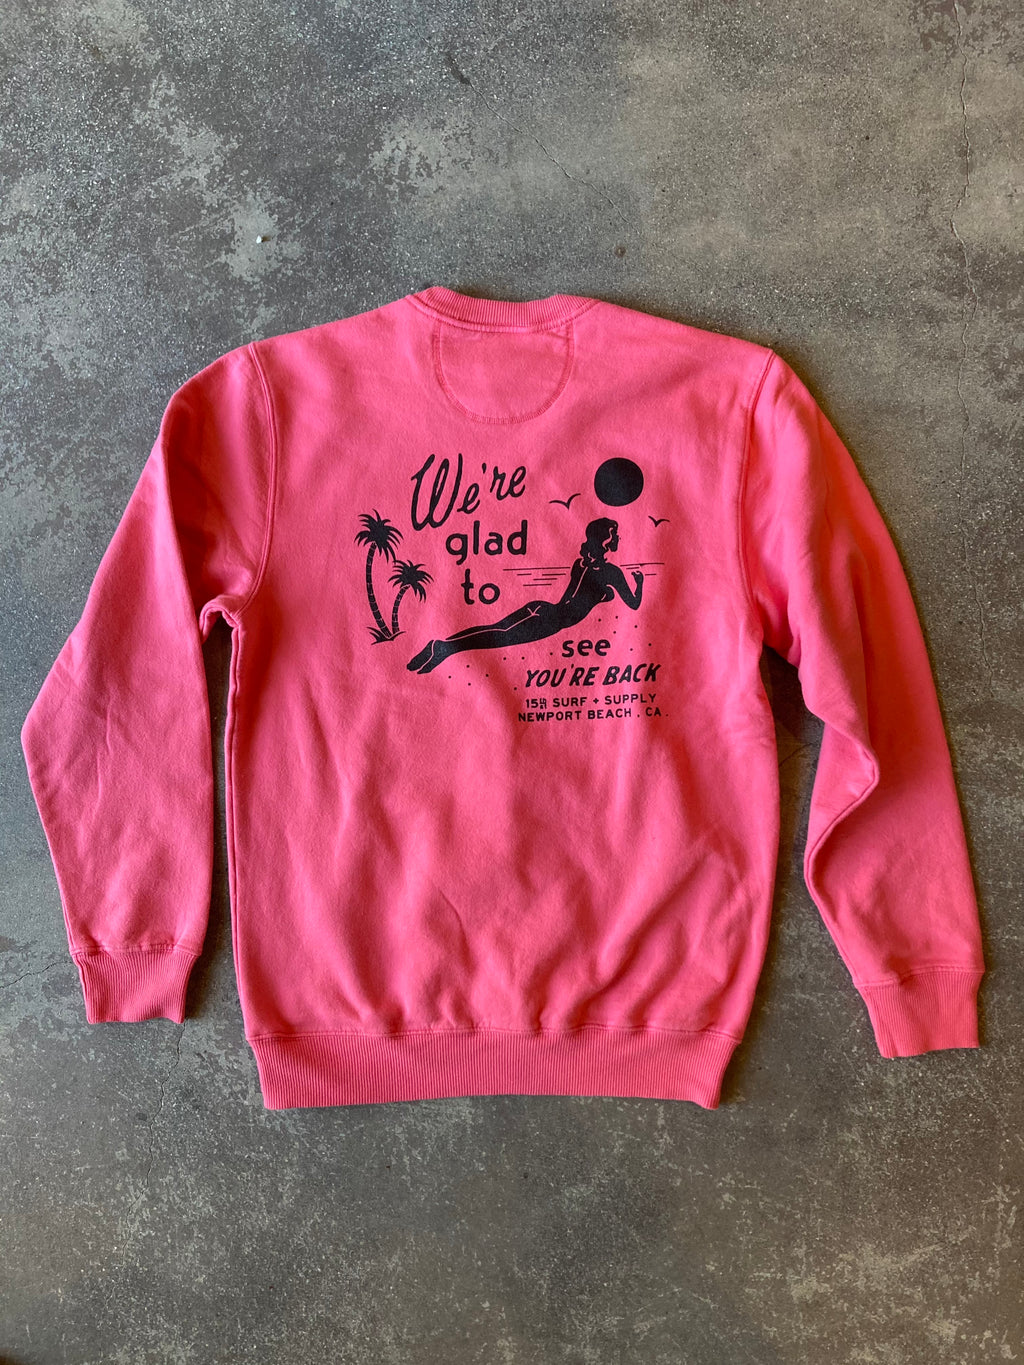 15th St Men's Glad To See You're Back Crewneck Watermelon Drip